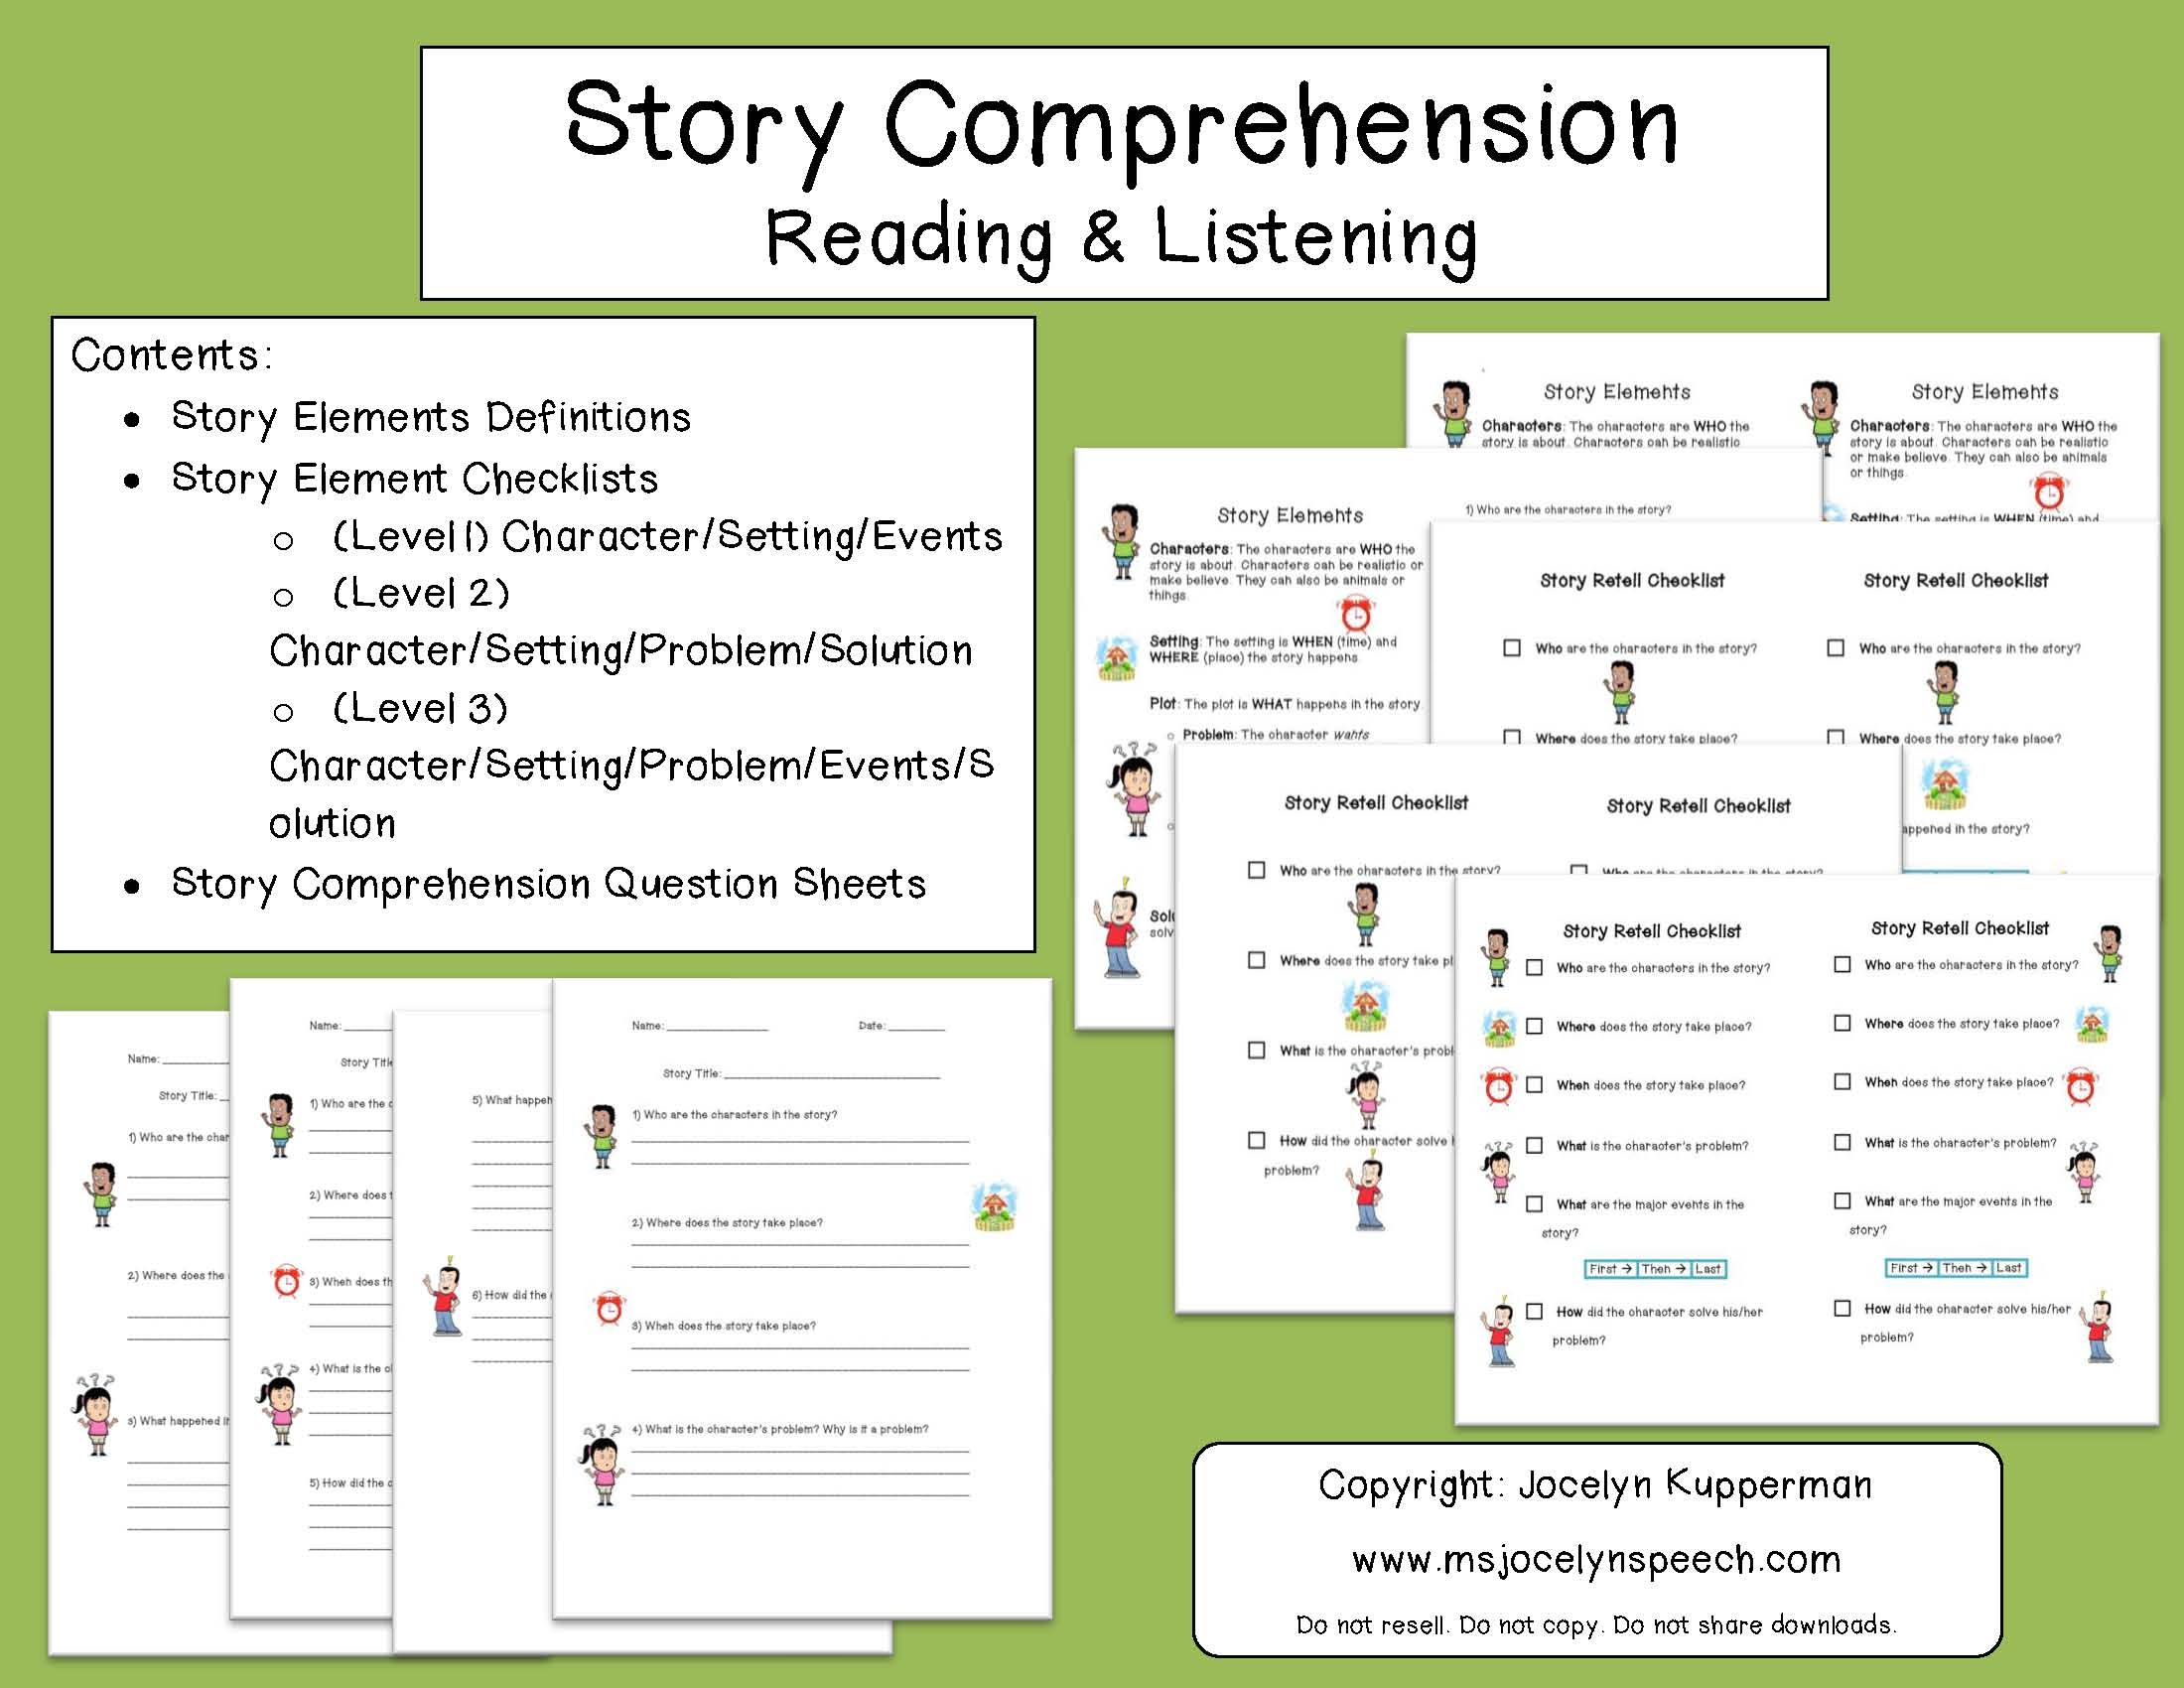 Story Comprehension Blog Intro